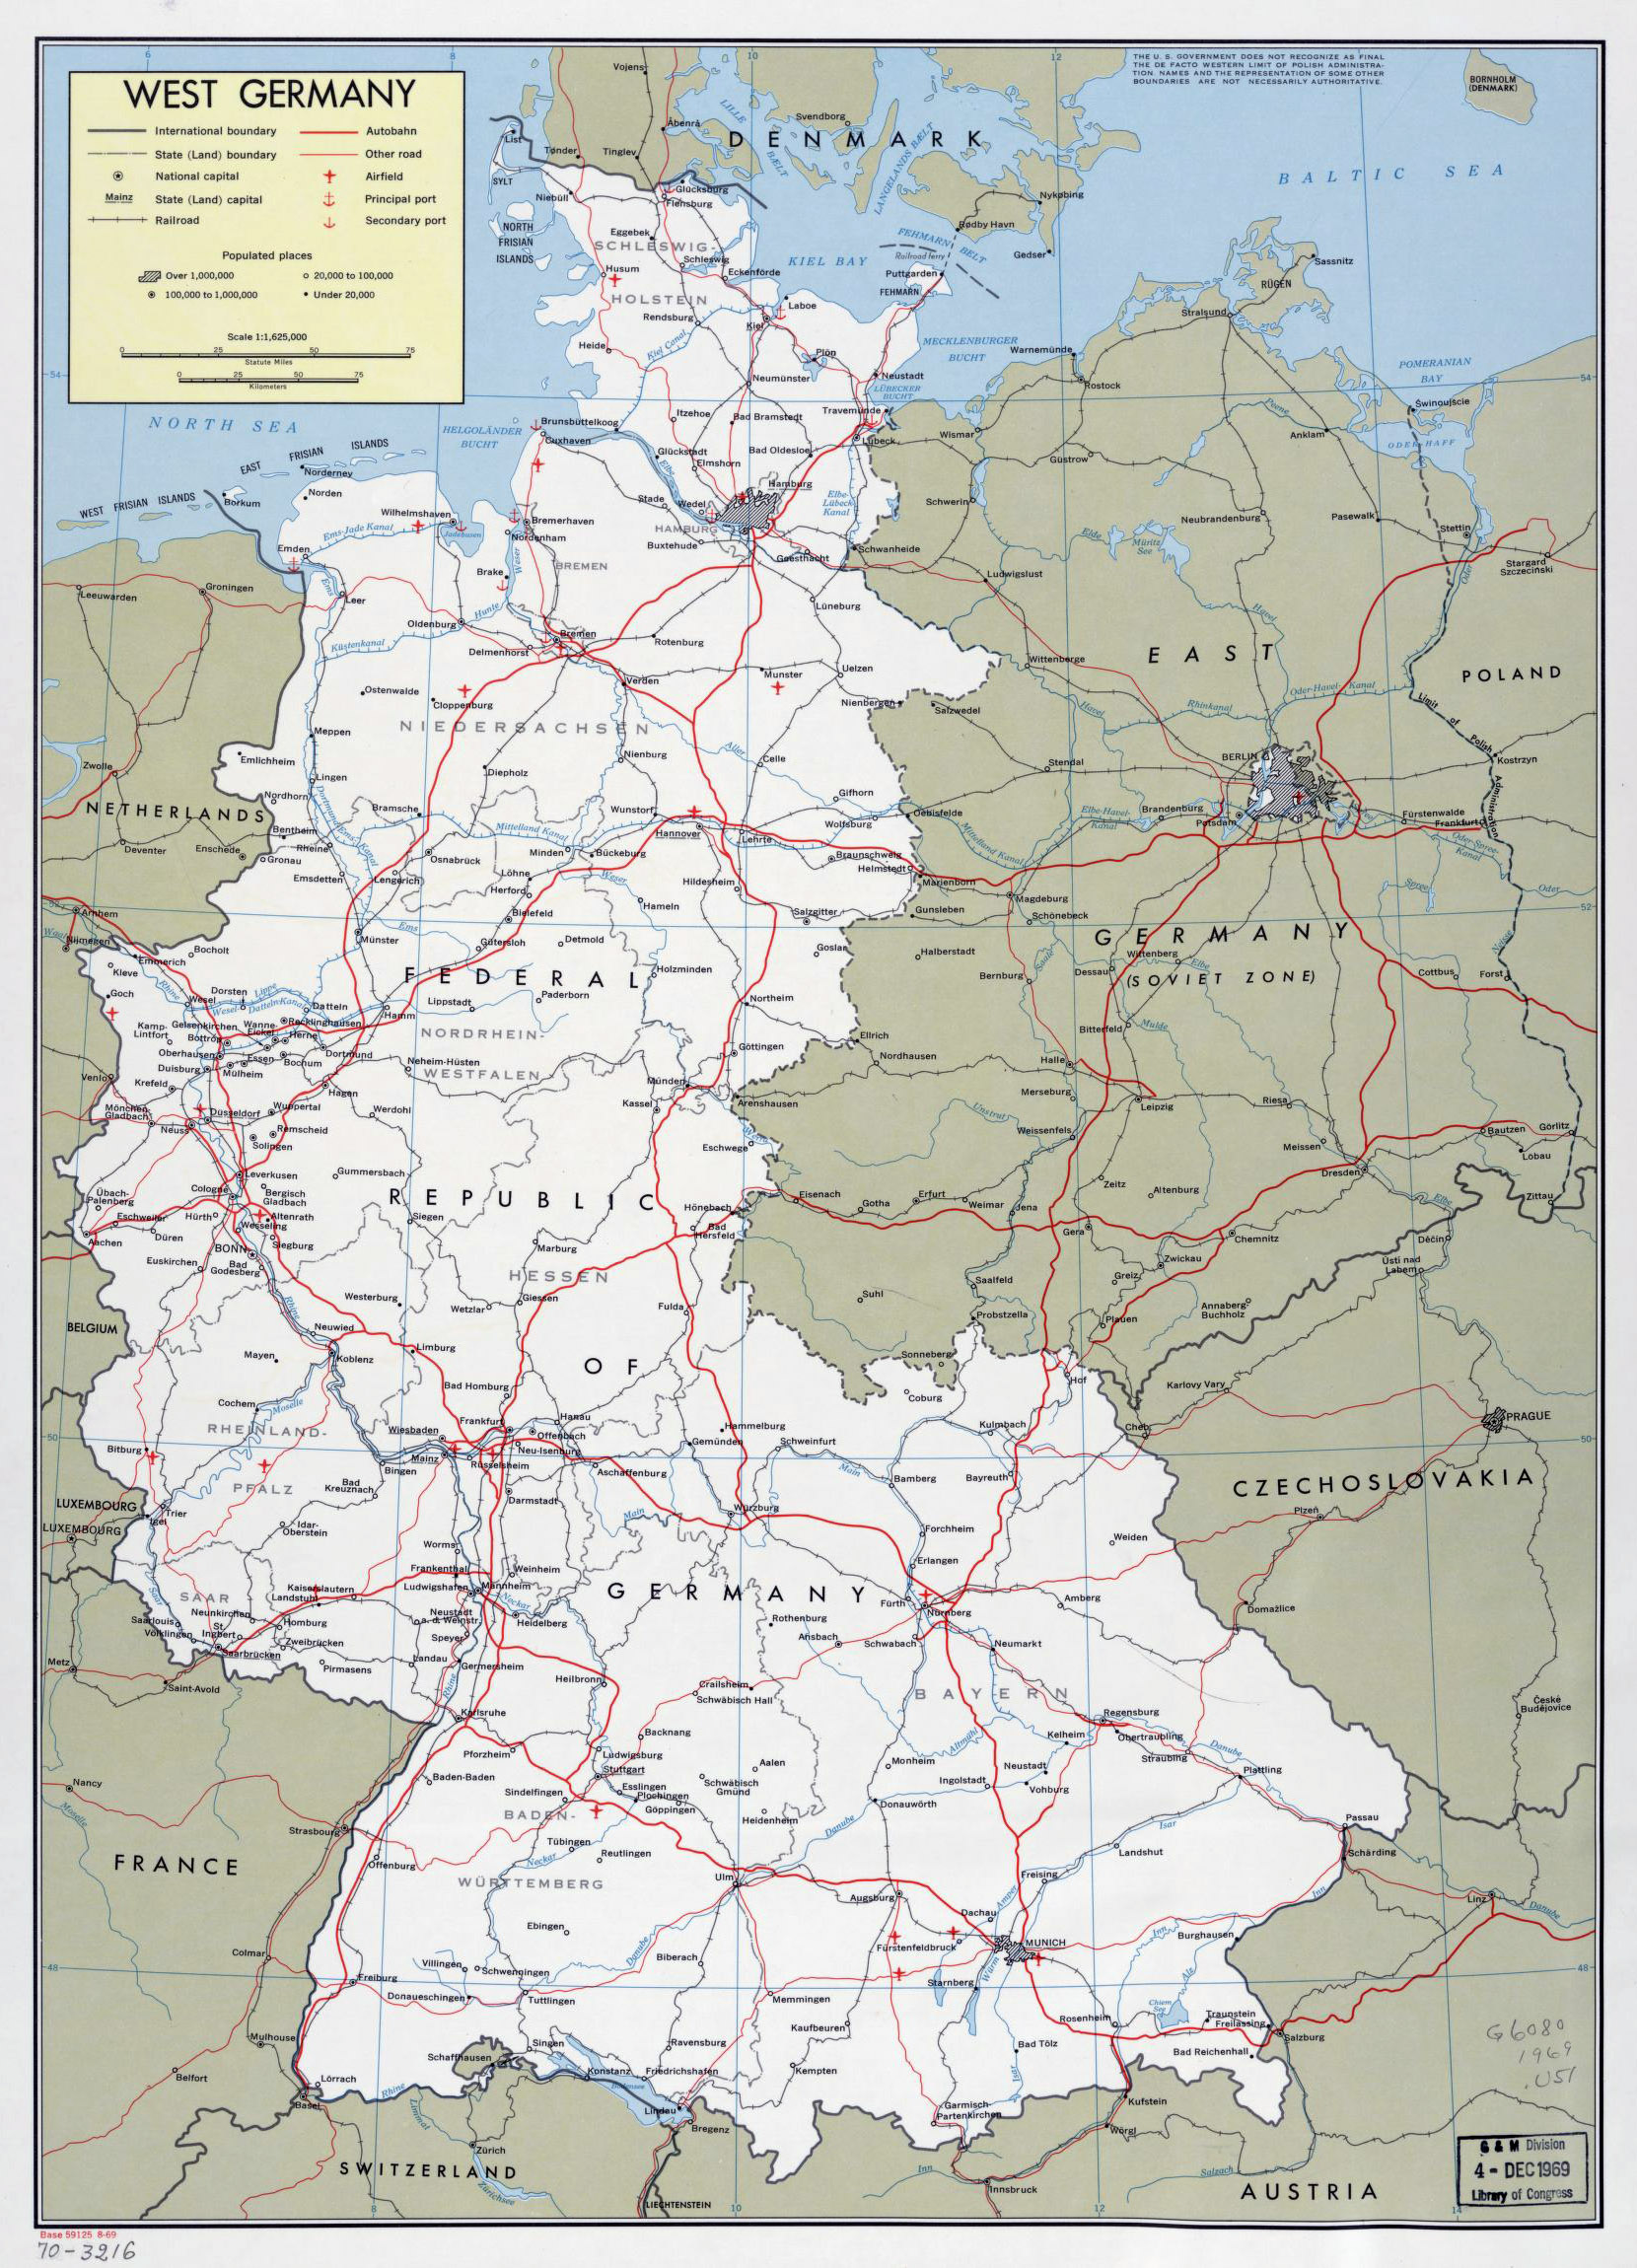 Large Political And Administrative Map Of West Germany With Roads - Germany map airports